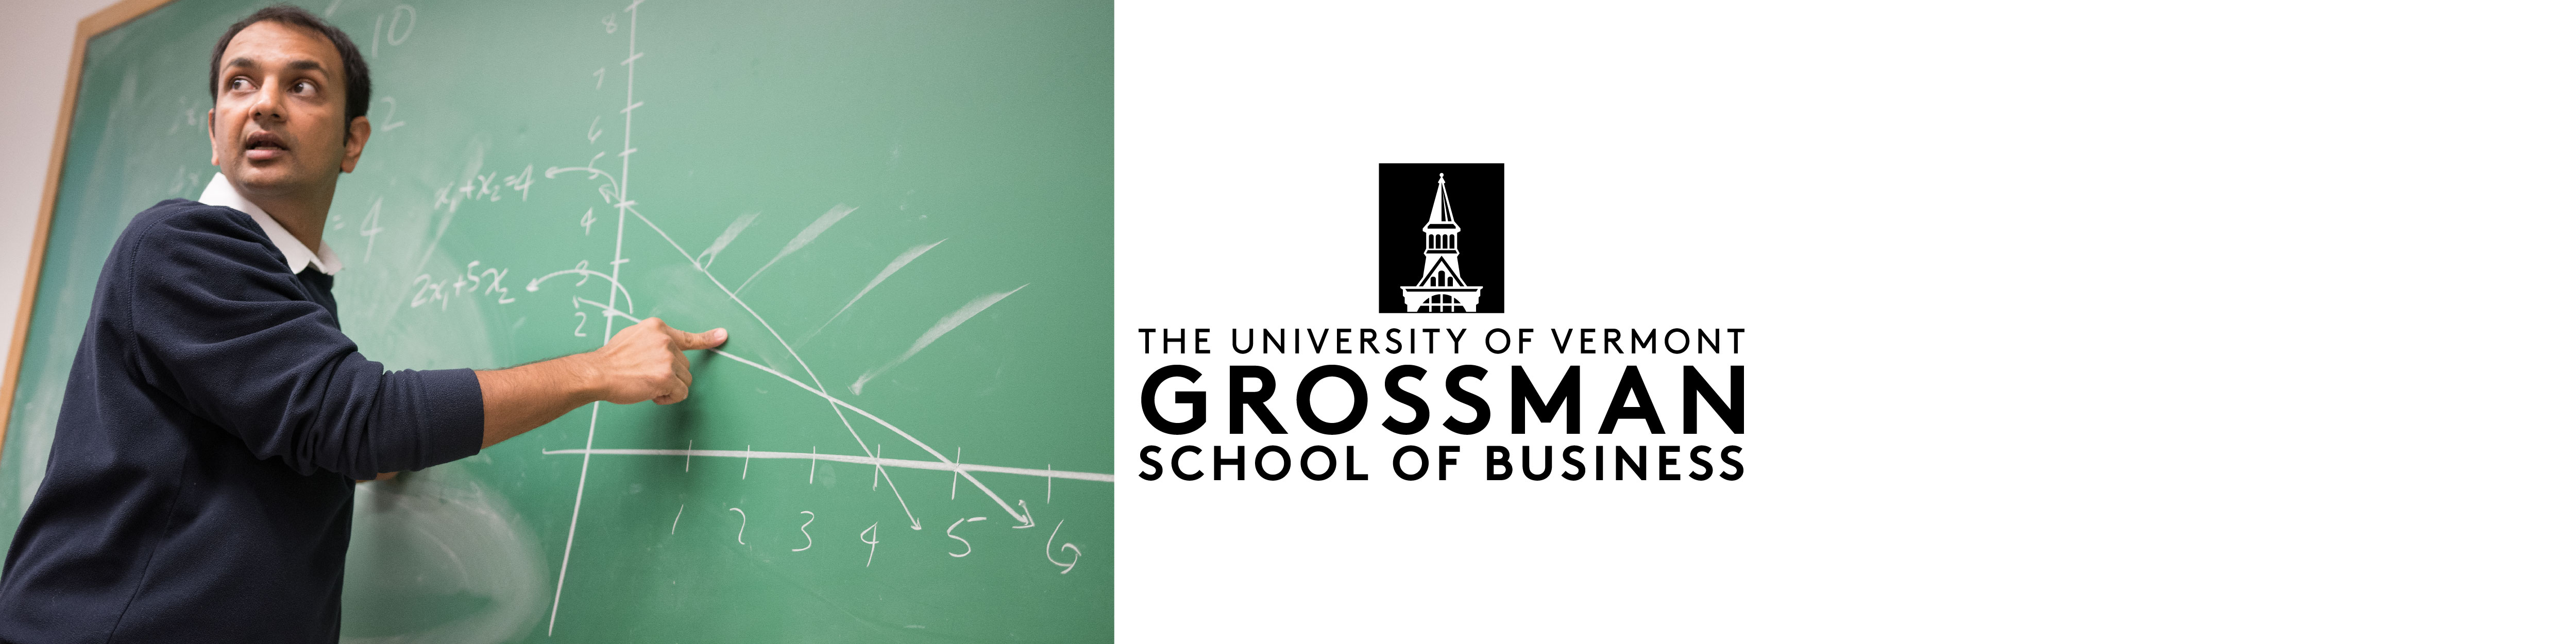 uvm, grossman school of business